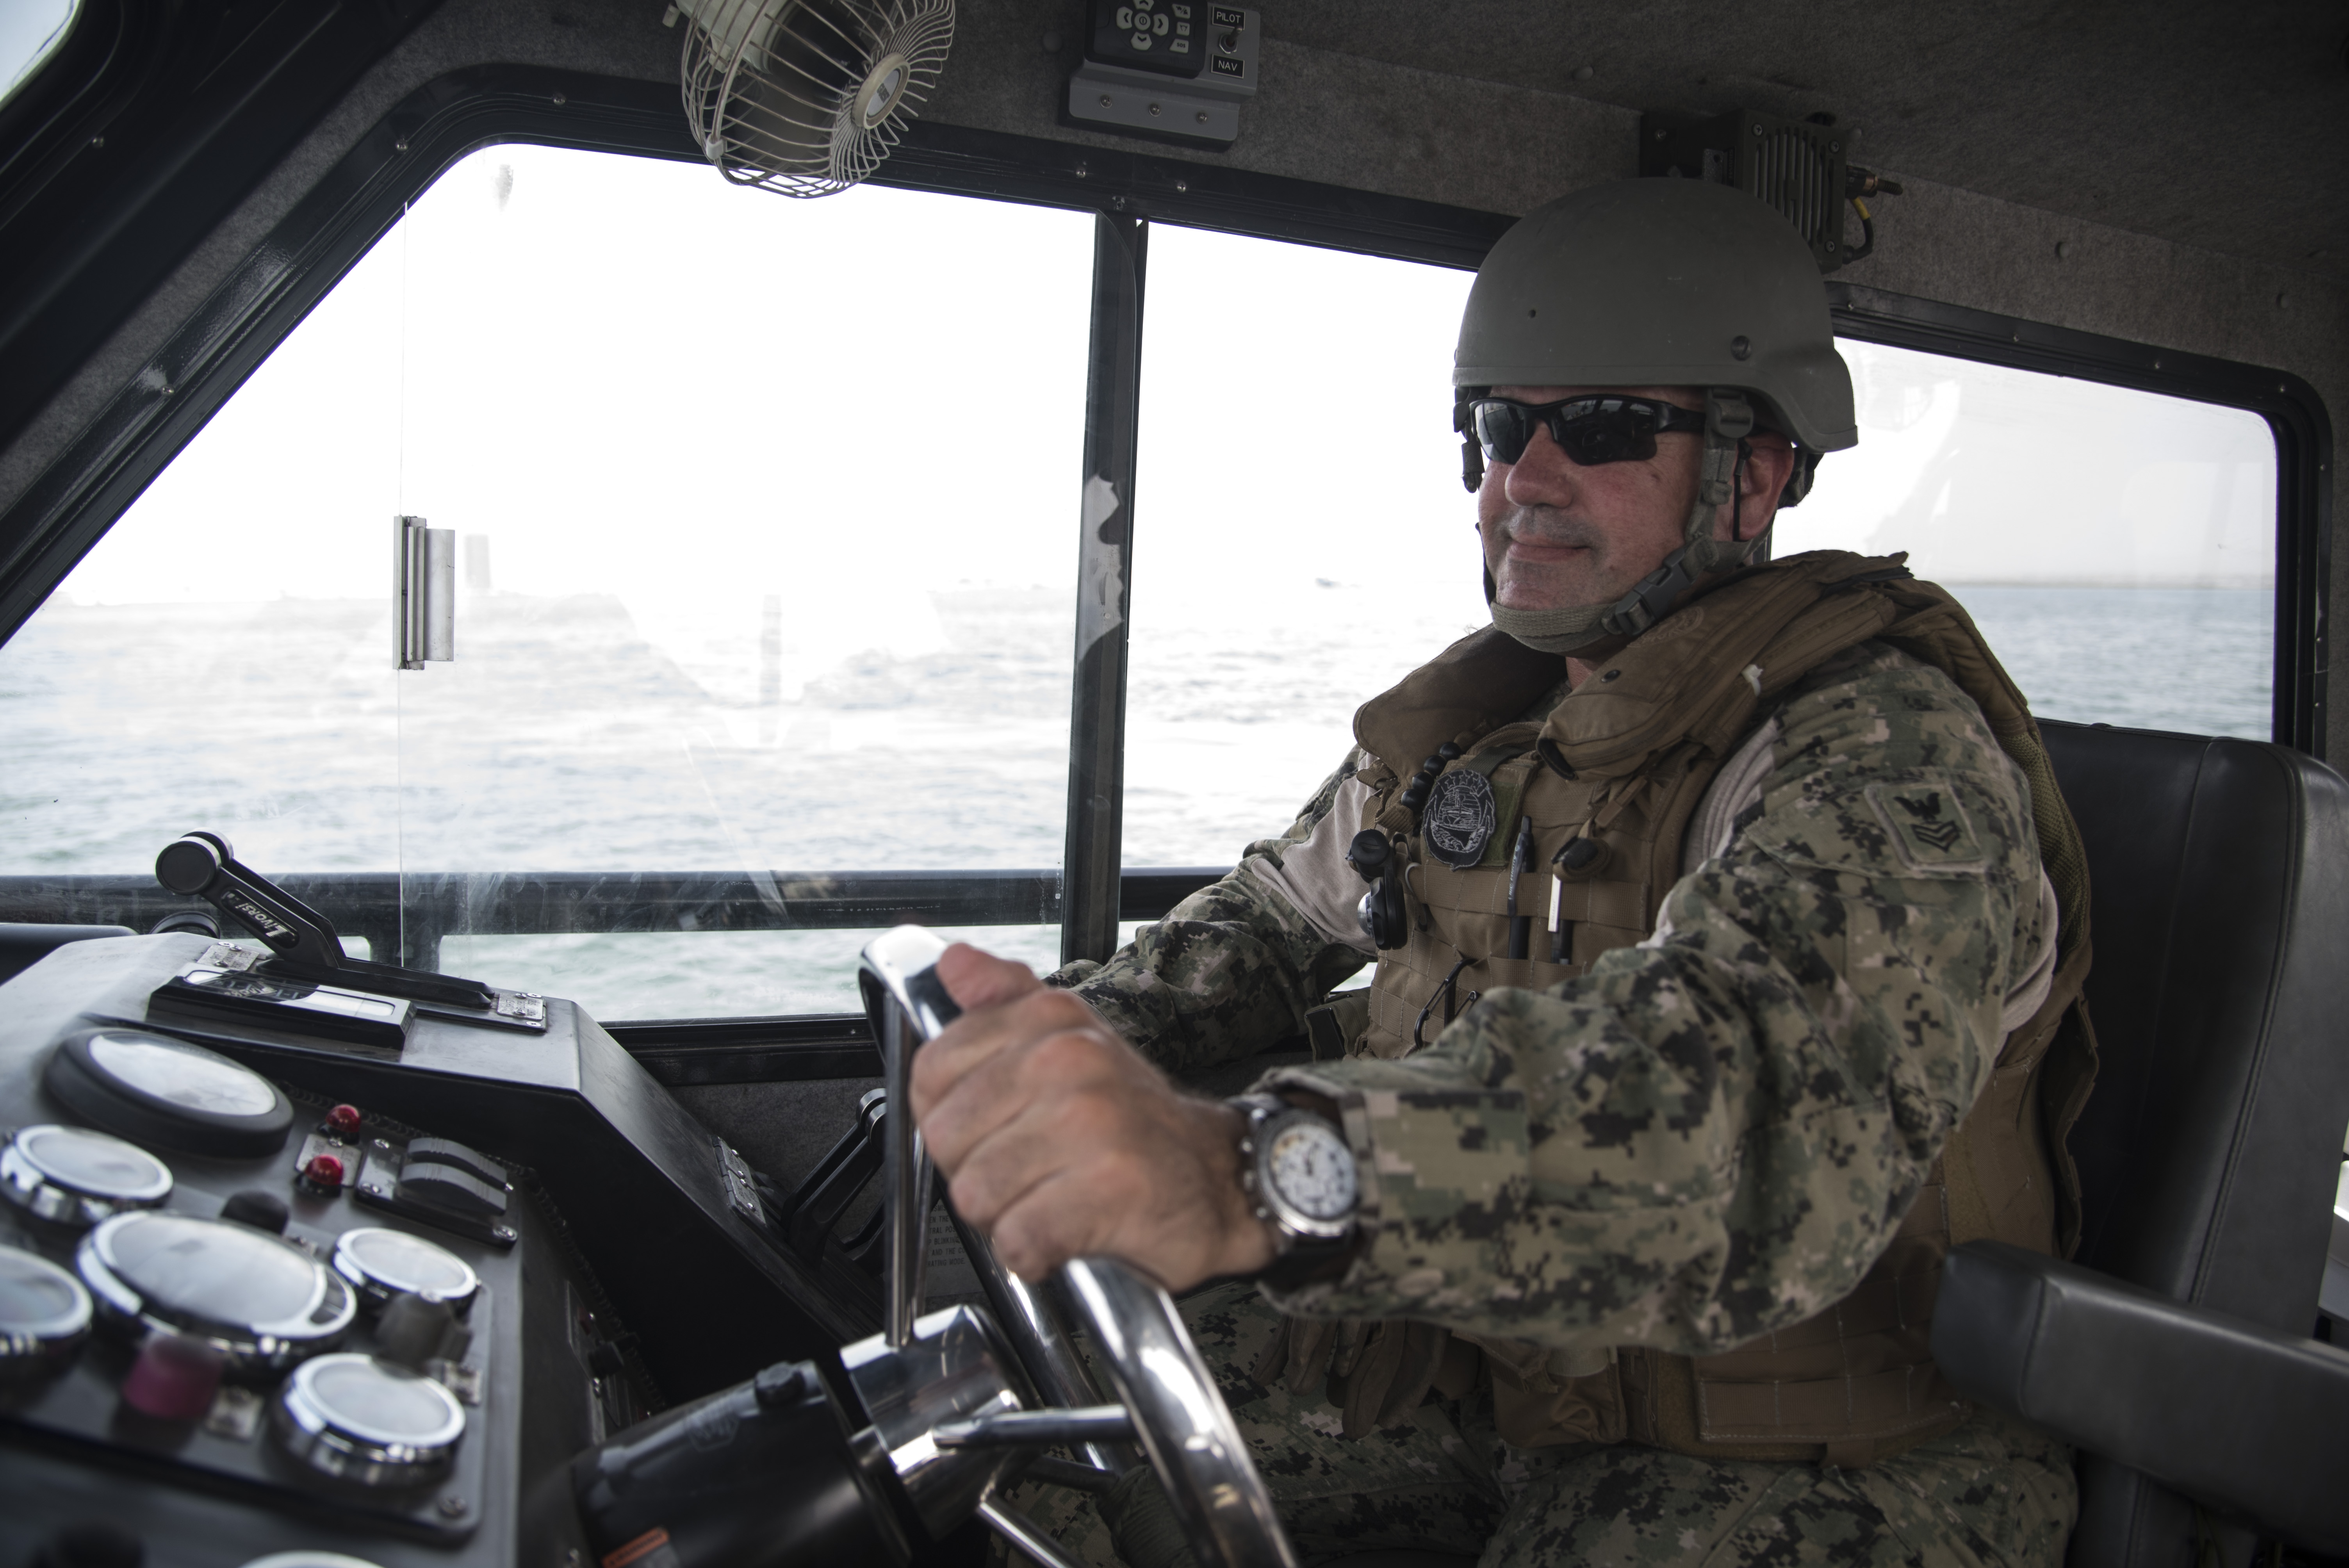 DJIBOUTI- U.S. Navy Petty Officer 1st Class James Padden, Coastal Riverine Squadron Eight boat captain assigned to Combined Joint Task Force-Horn of Africa, drives a SeaArk Dauntless patrol boat while providing security for a U.S. asset on June 27, 2016, in Djibouti. The CRS-8 provides security for any U.S. ship coming into, staying and leaving the port. (U.S. Air Force photo by Staff Sgt. Tiffany DeNault)